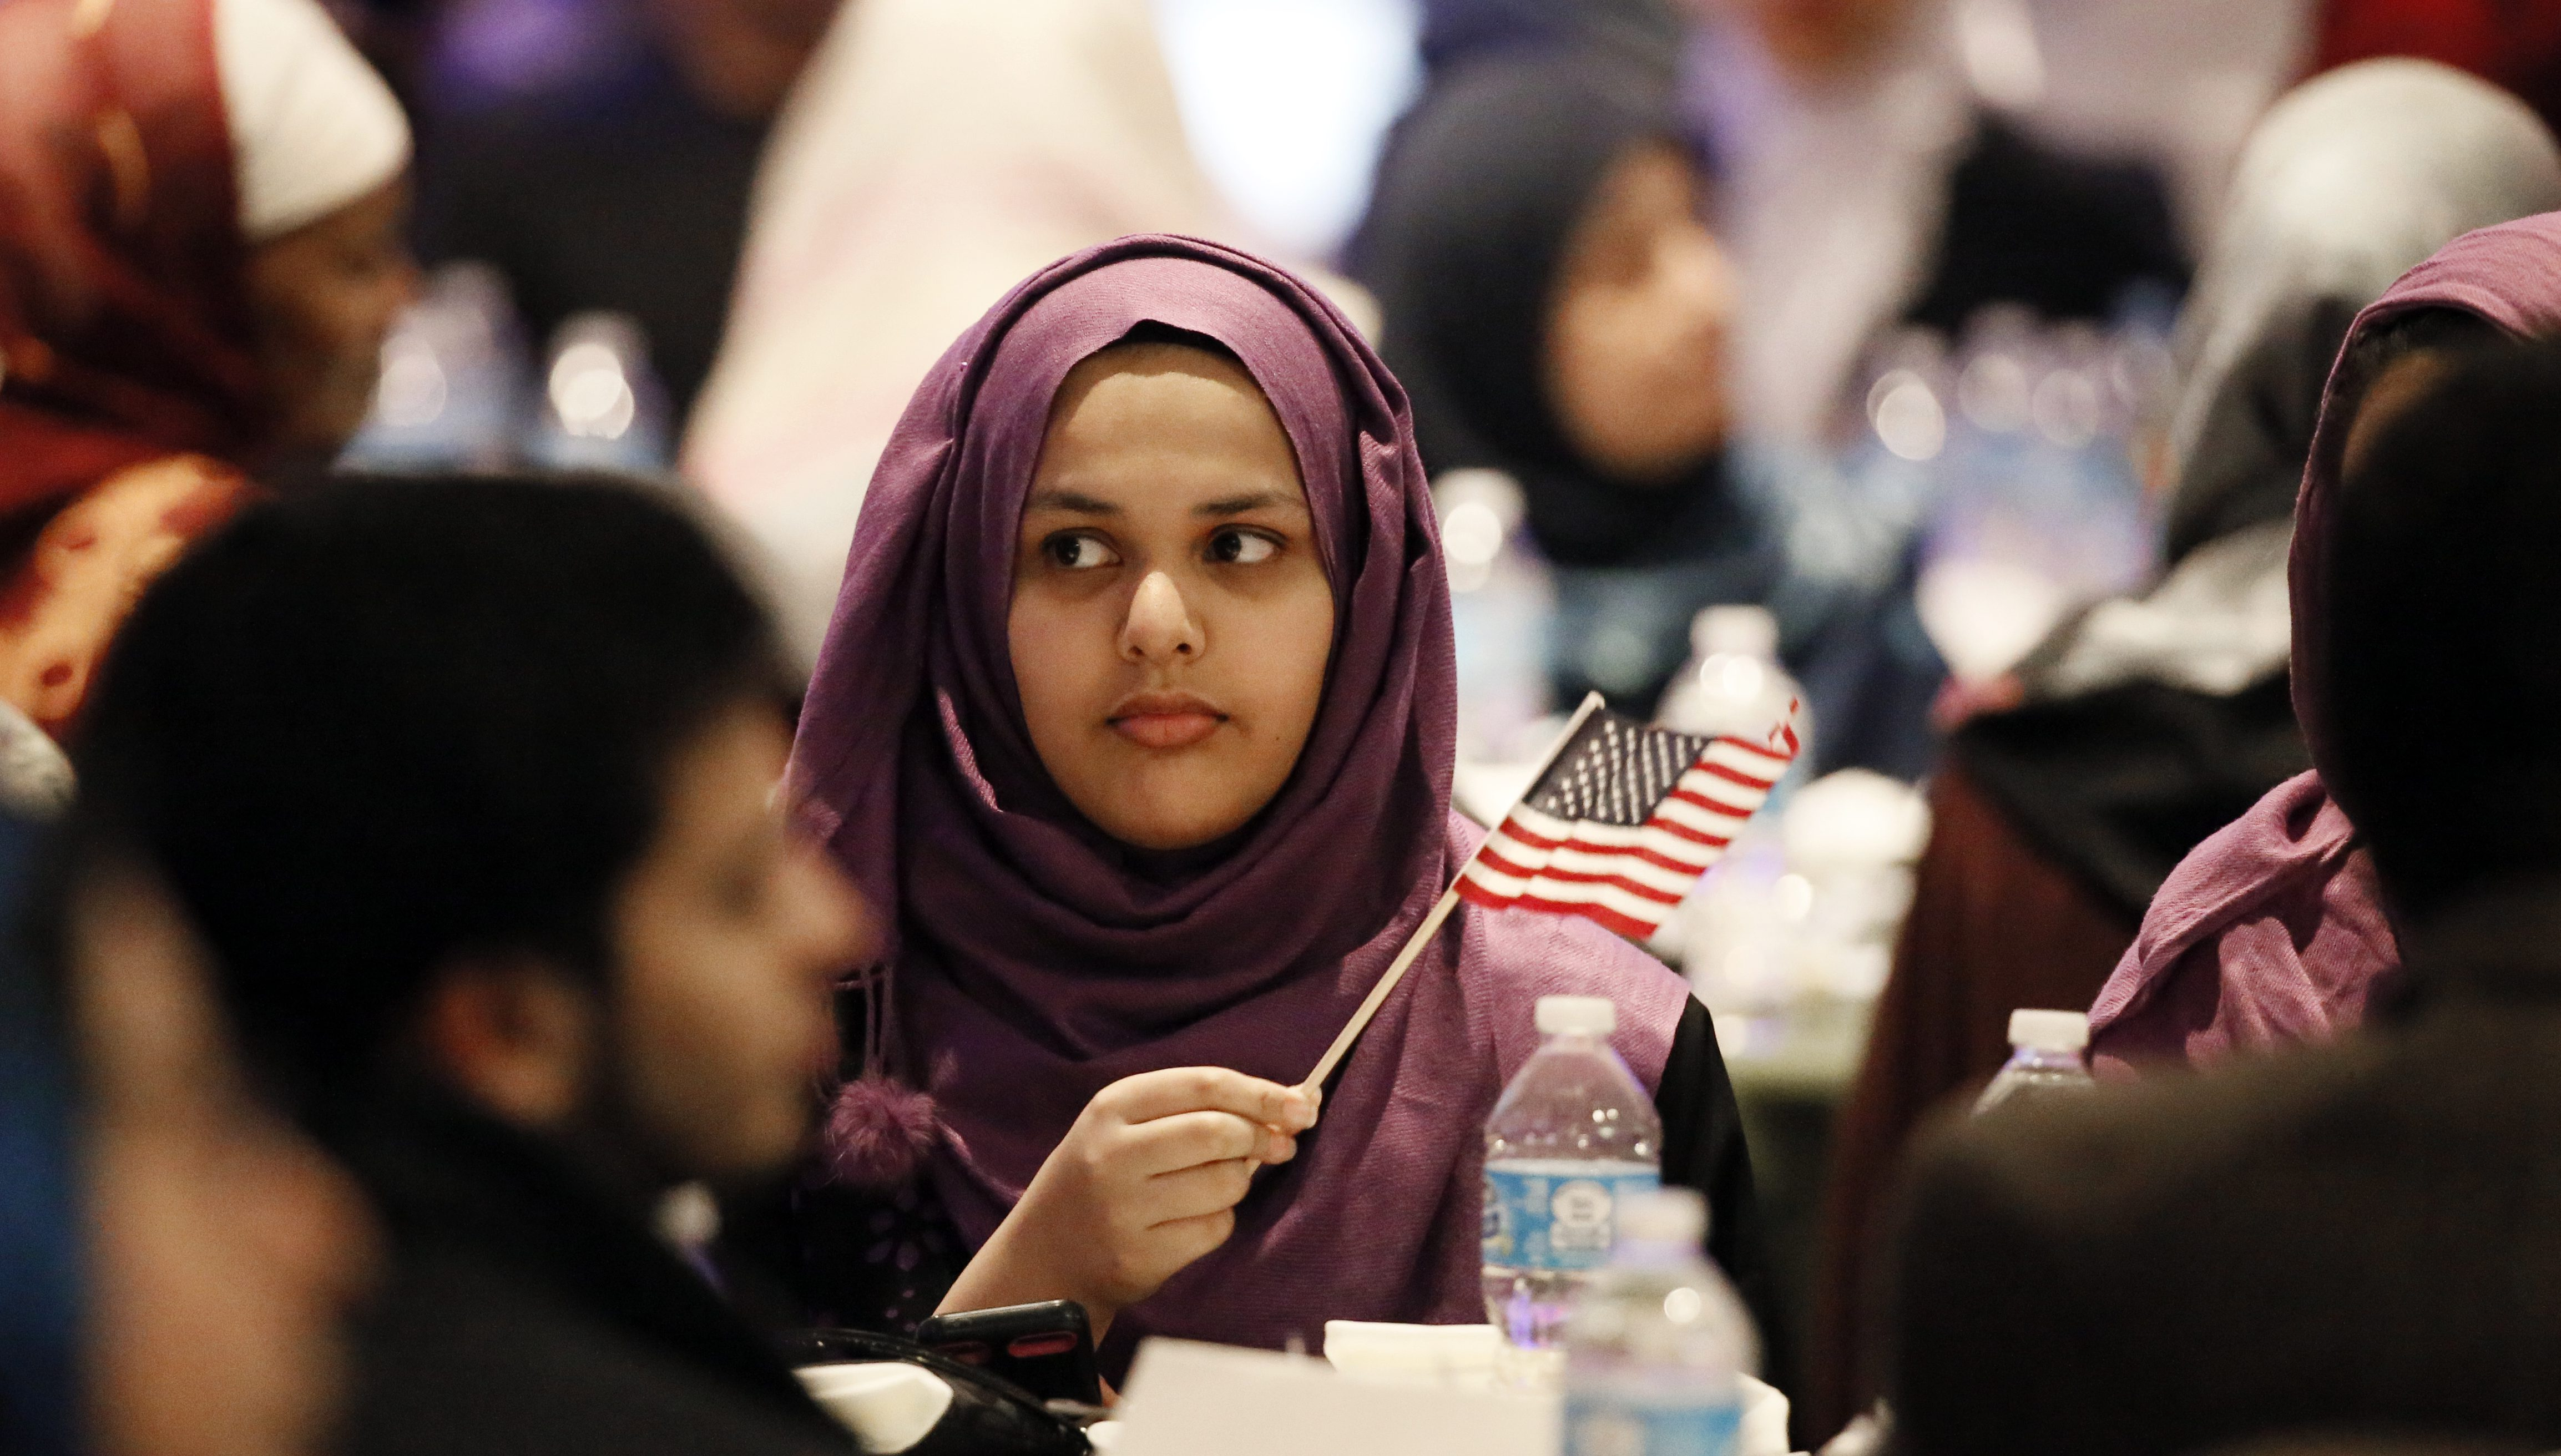 A young woman waves an American flag along with others at the beginning of a Muslim conference against terror and hate at the Curtis Culwell Center, Saturday, Jan. 17, 2015, in Garland, Texas.